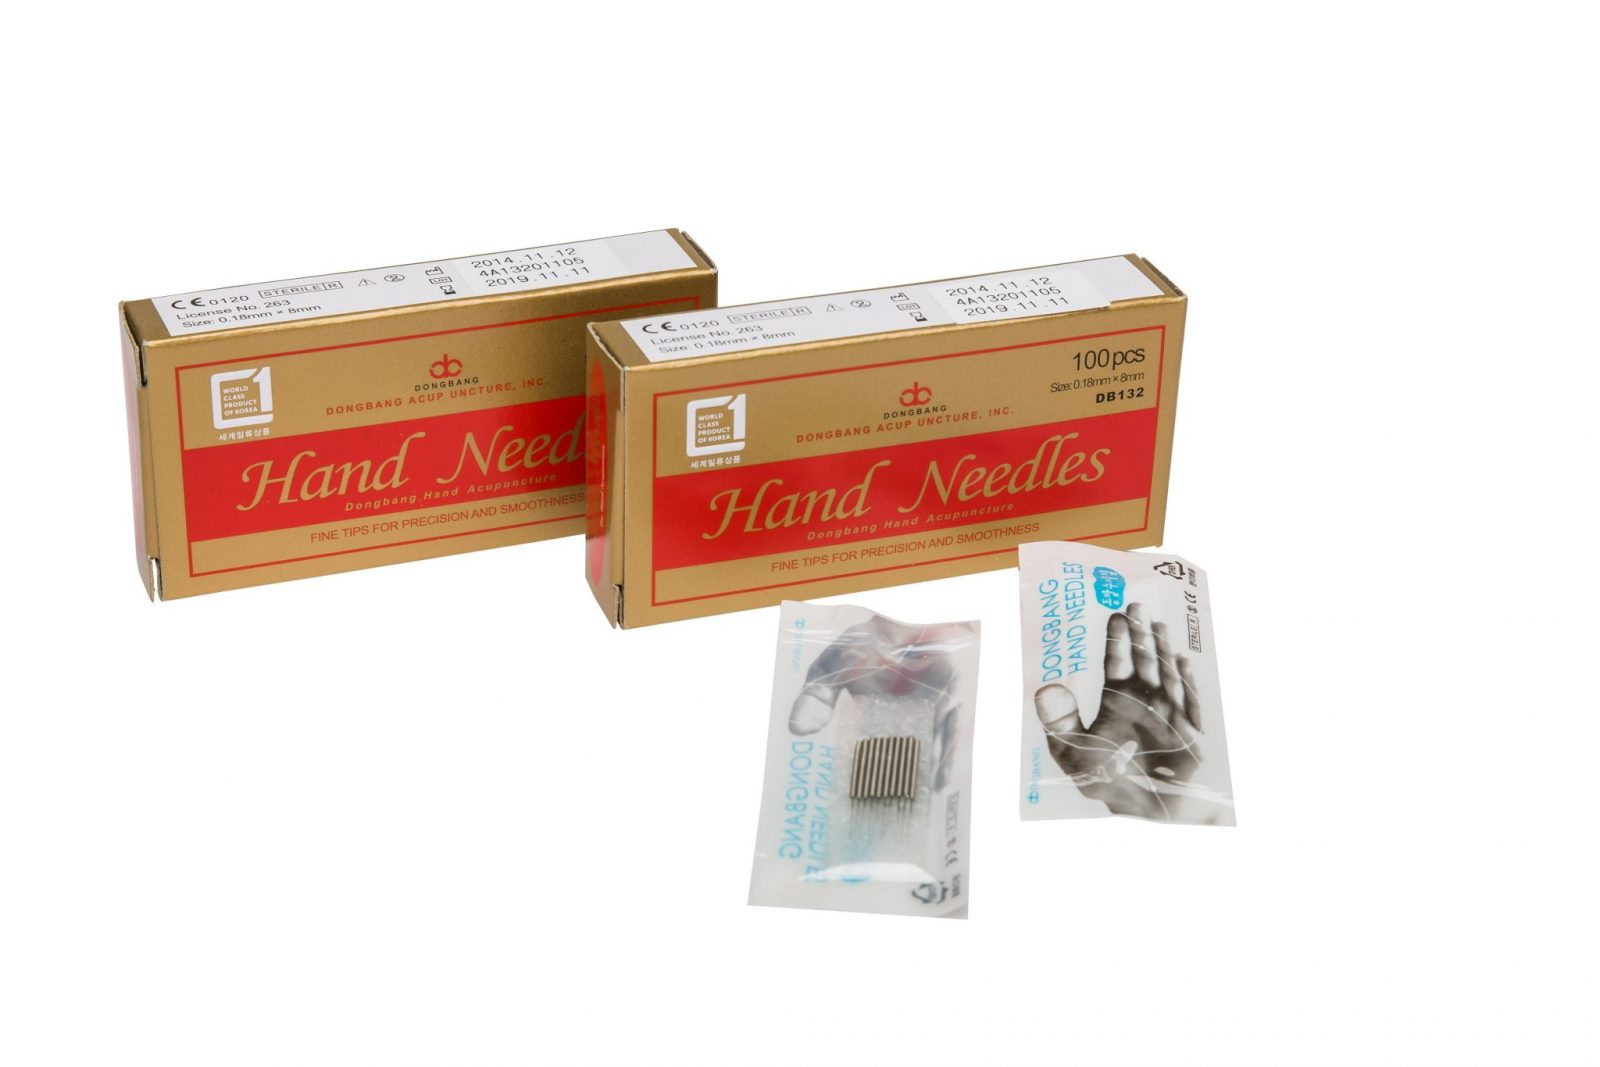 DongBang Hand Face Needles